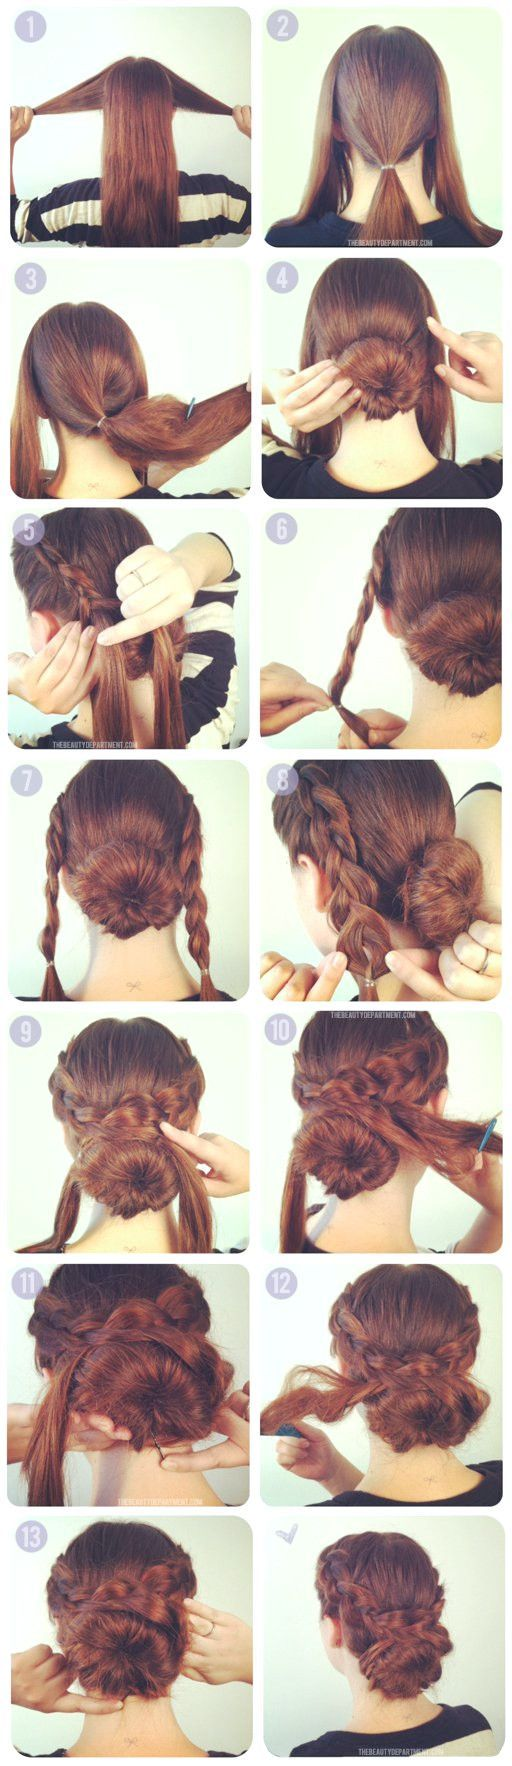 20 simple hairstyle tutorials for your everyday life, #Allday #easy #simple hairstyles horse …